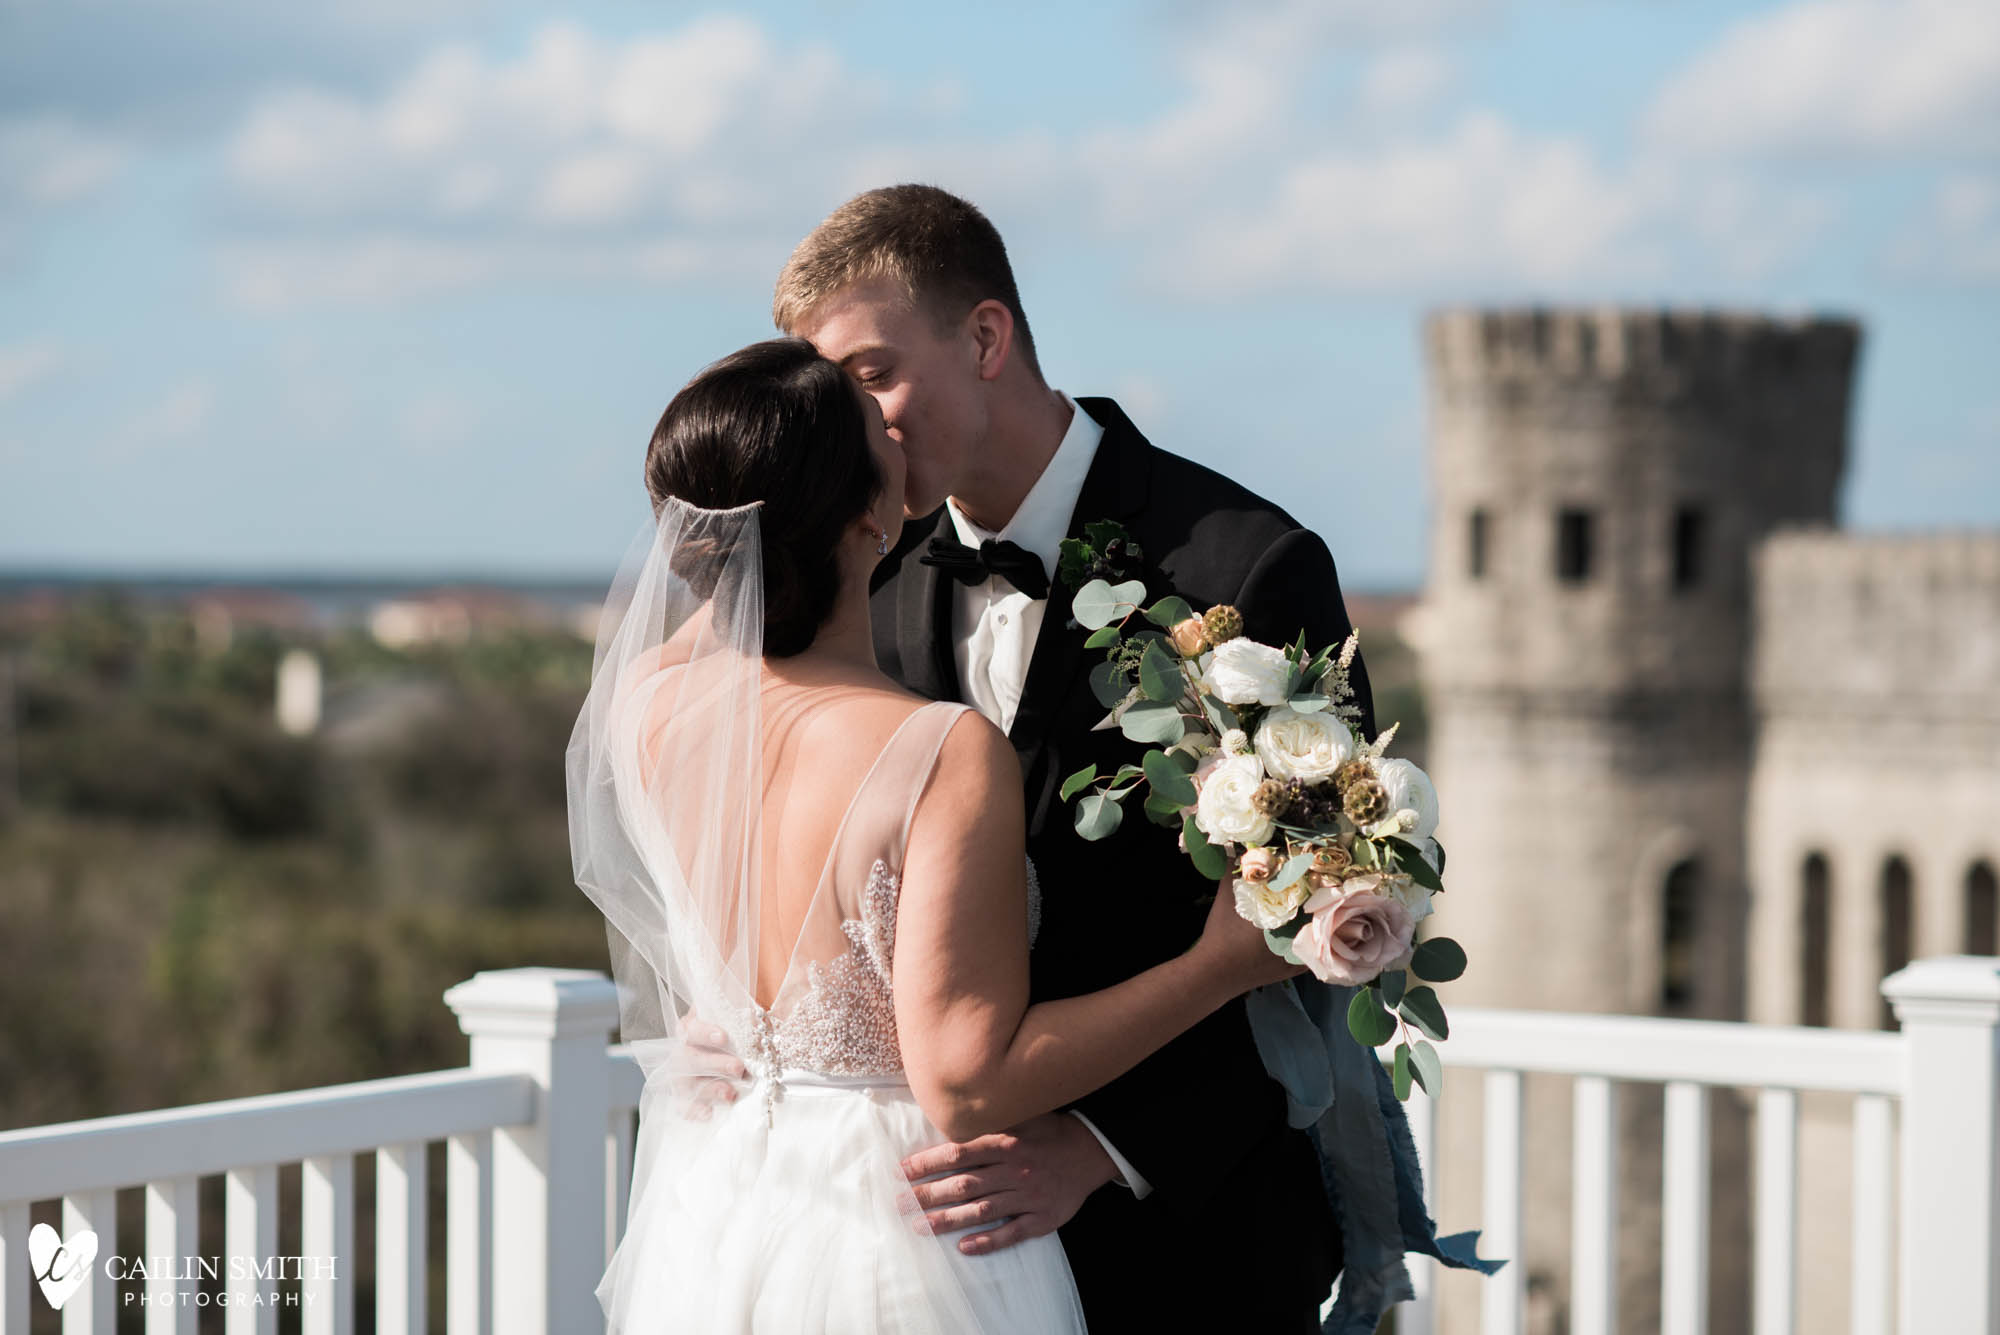 Christina_Matt_Castlegate_Vilano_Beach_Wedding_Photography_0032.jpg